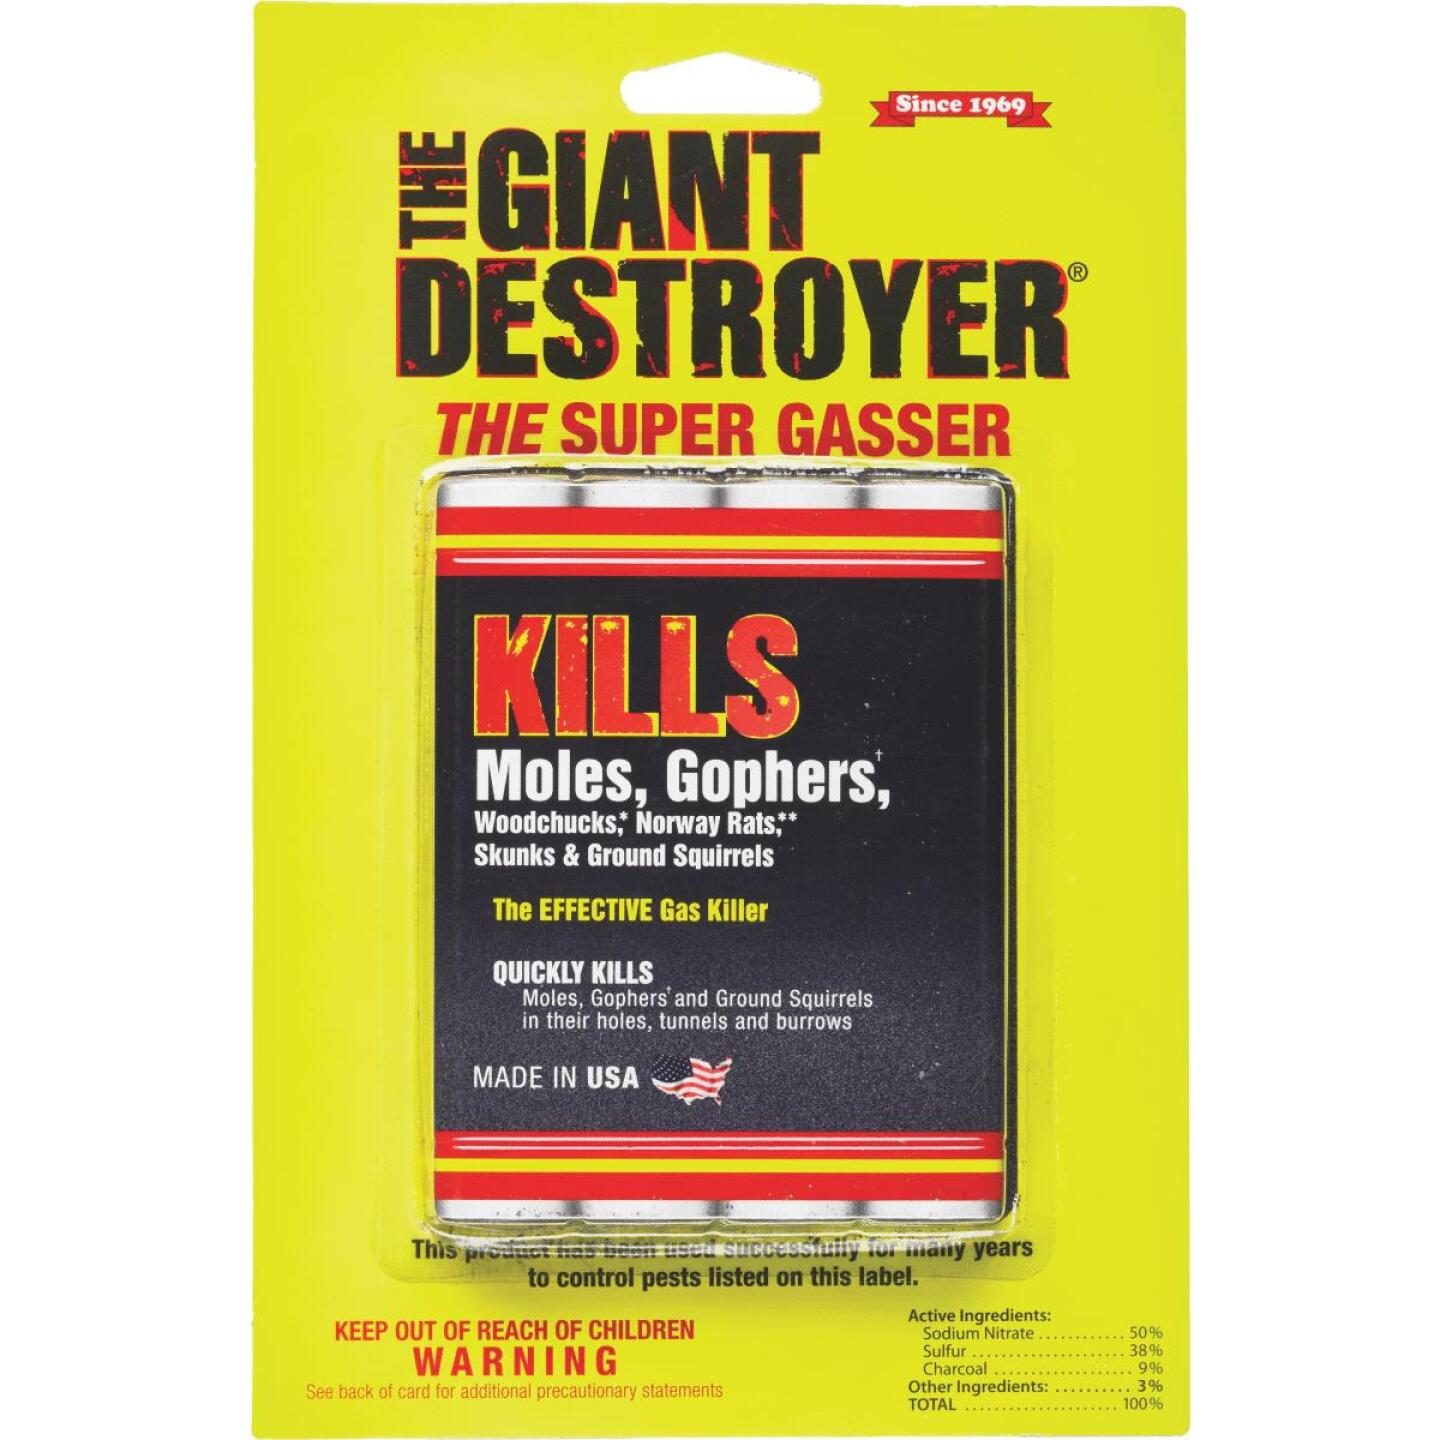 Atlas Giant Destroyer 4-Pack Gas Cartridges Mole & Gopher Killer Image 1